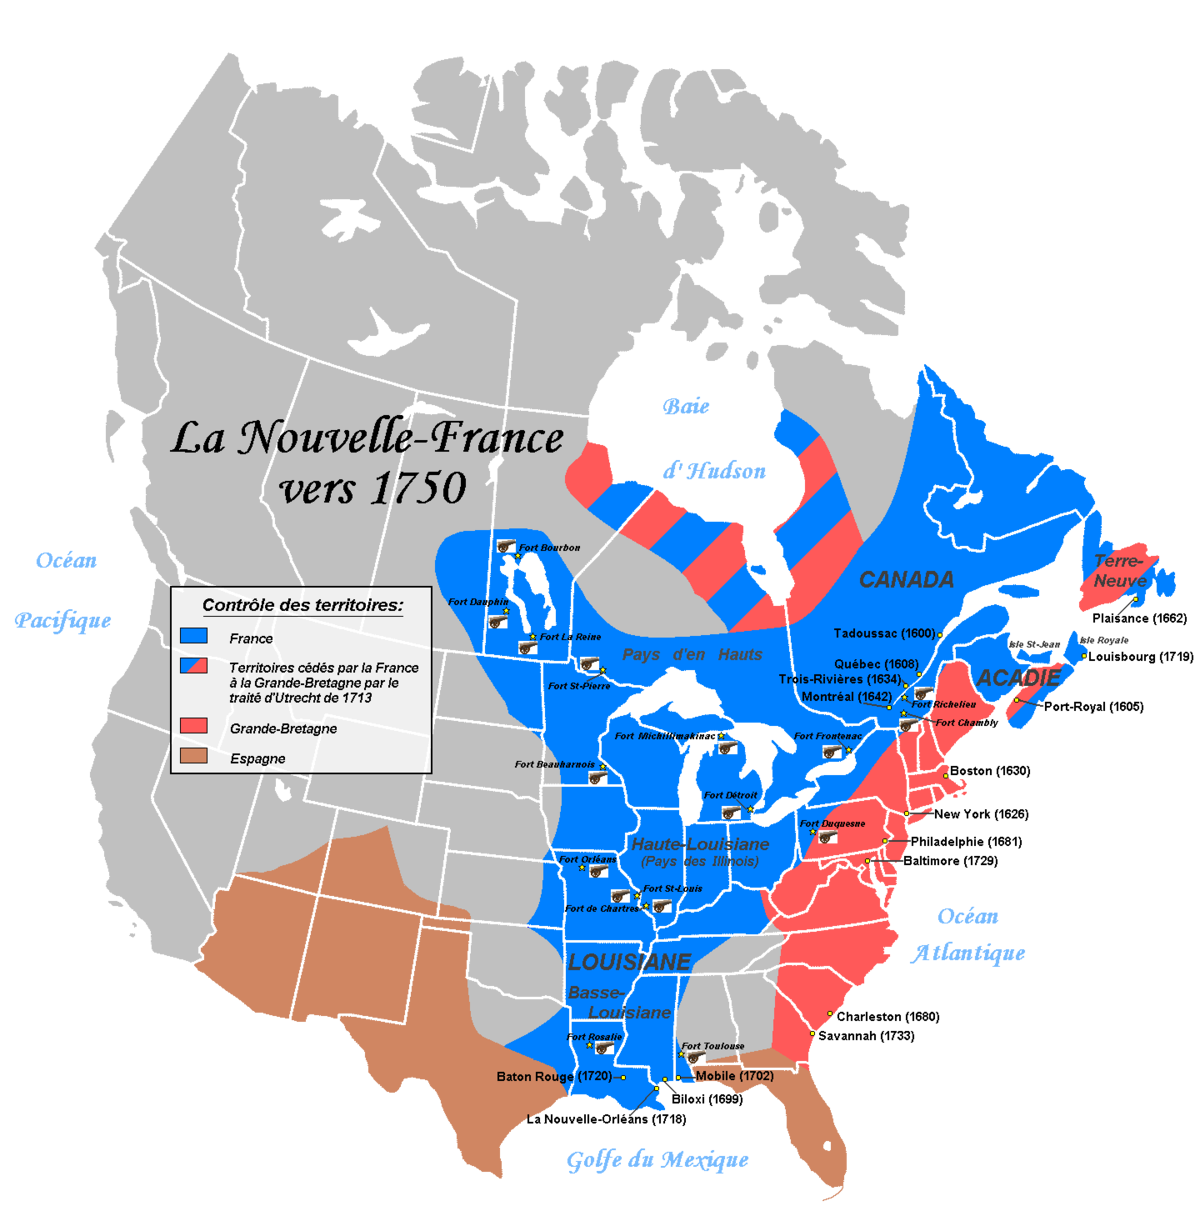 the history of the french colonies in canada Then there are colonies of canada  the french colonies in the new world (canada,  look it up maybe in a history book or maybe ask a history teacher at a school.